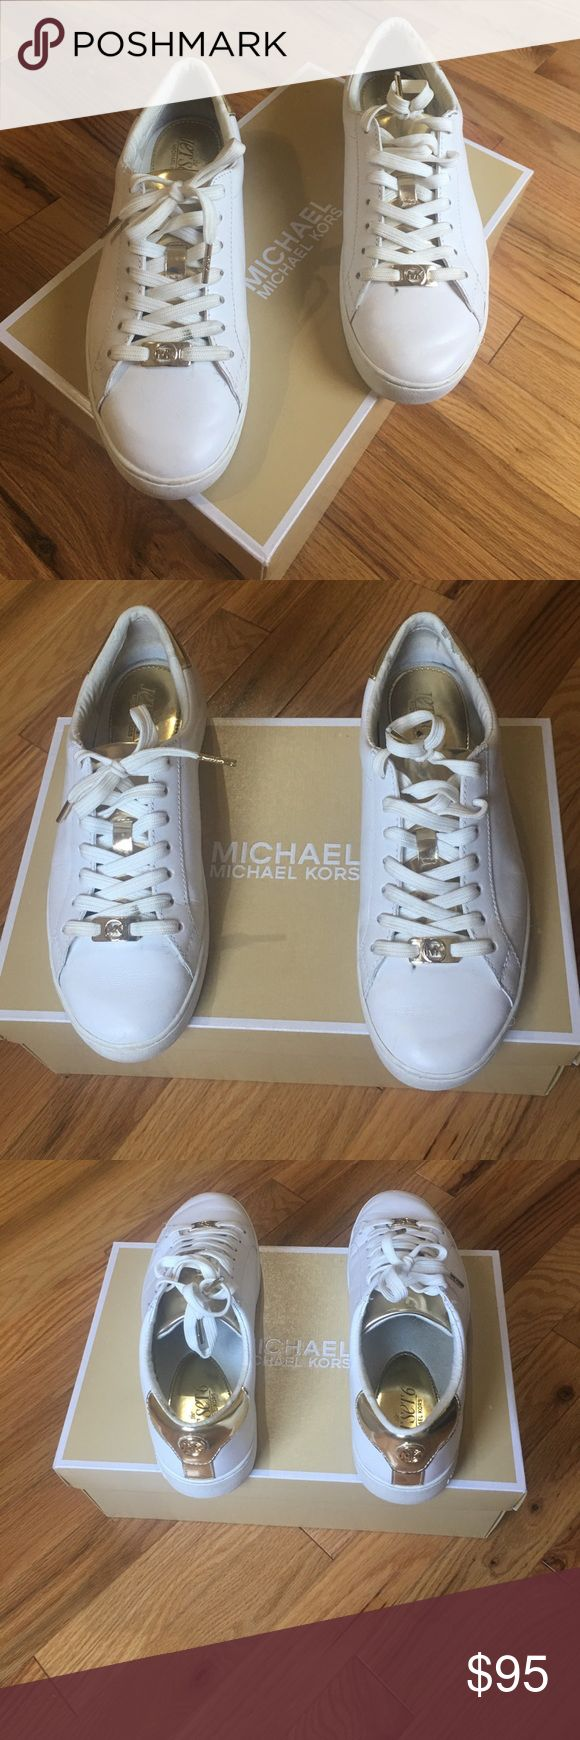 """Michael Kors Irving lace up Michael Kors Irving lace up Perfect for styling on the go, this lace-up sneaker lends a stunning update to an ultra casual look! Crafted from fine vachetta leather with a metallic gold leather trim, this shoe lends a luxurious touch to your favorite ensembles.         leather sneaker with metallic golden accents. 1"""" platform sole. Round toe. Lace-up front. Tonal topstitching. Padded footbed and heel counter. Rubber sole Worn 3X, GREAT Condition! Comes in Michael…"""